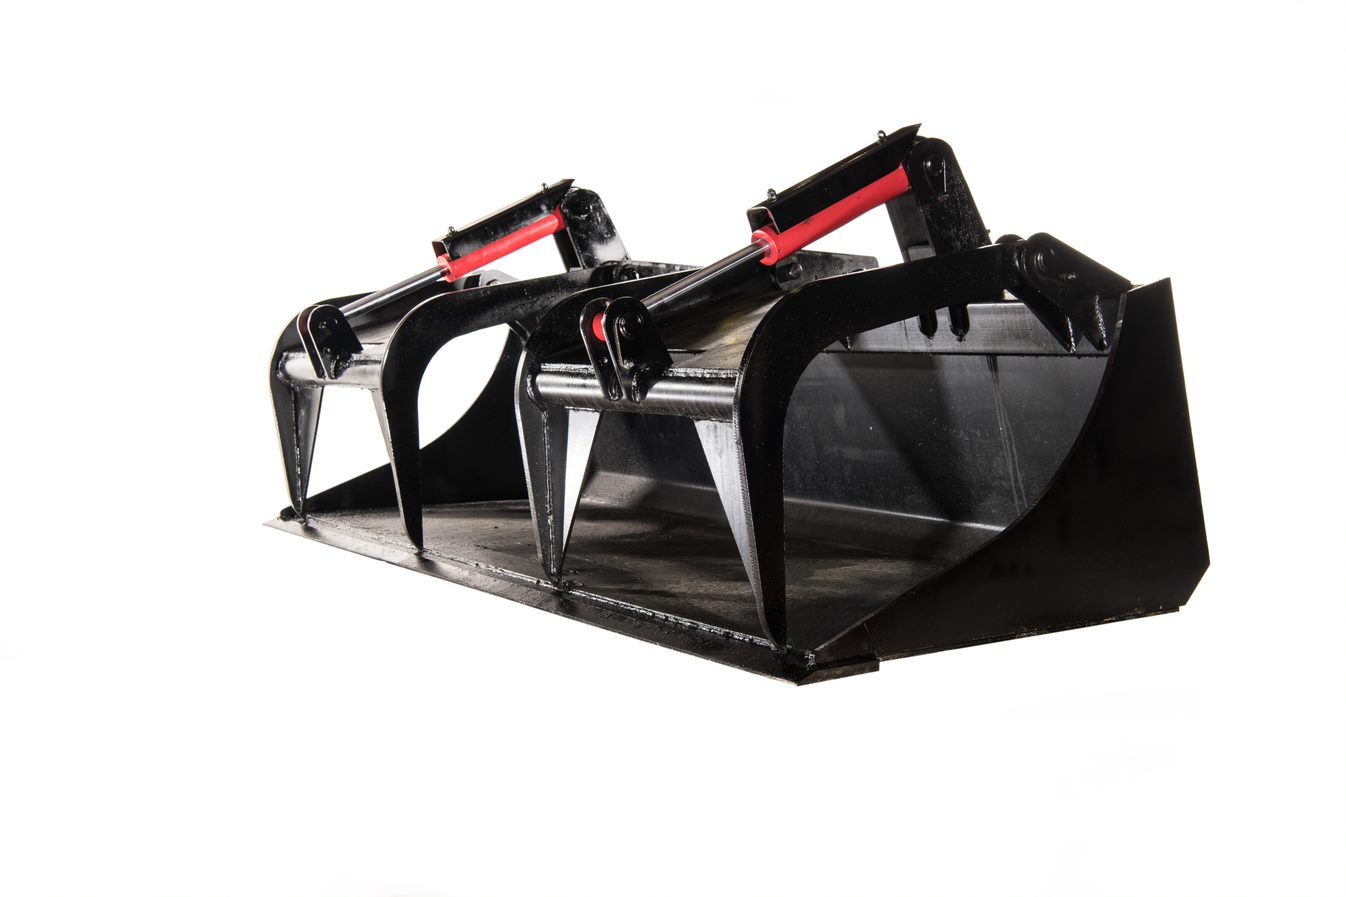 skid steer demolition bucket